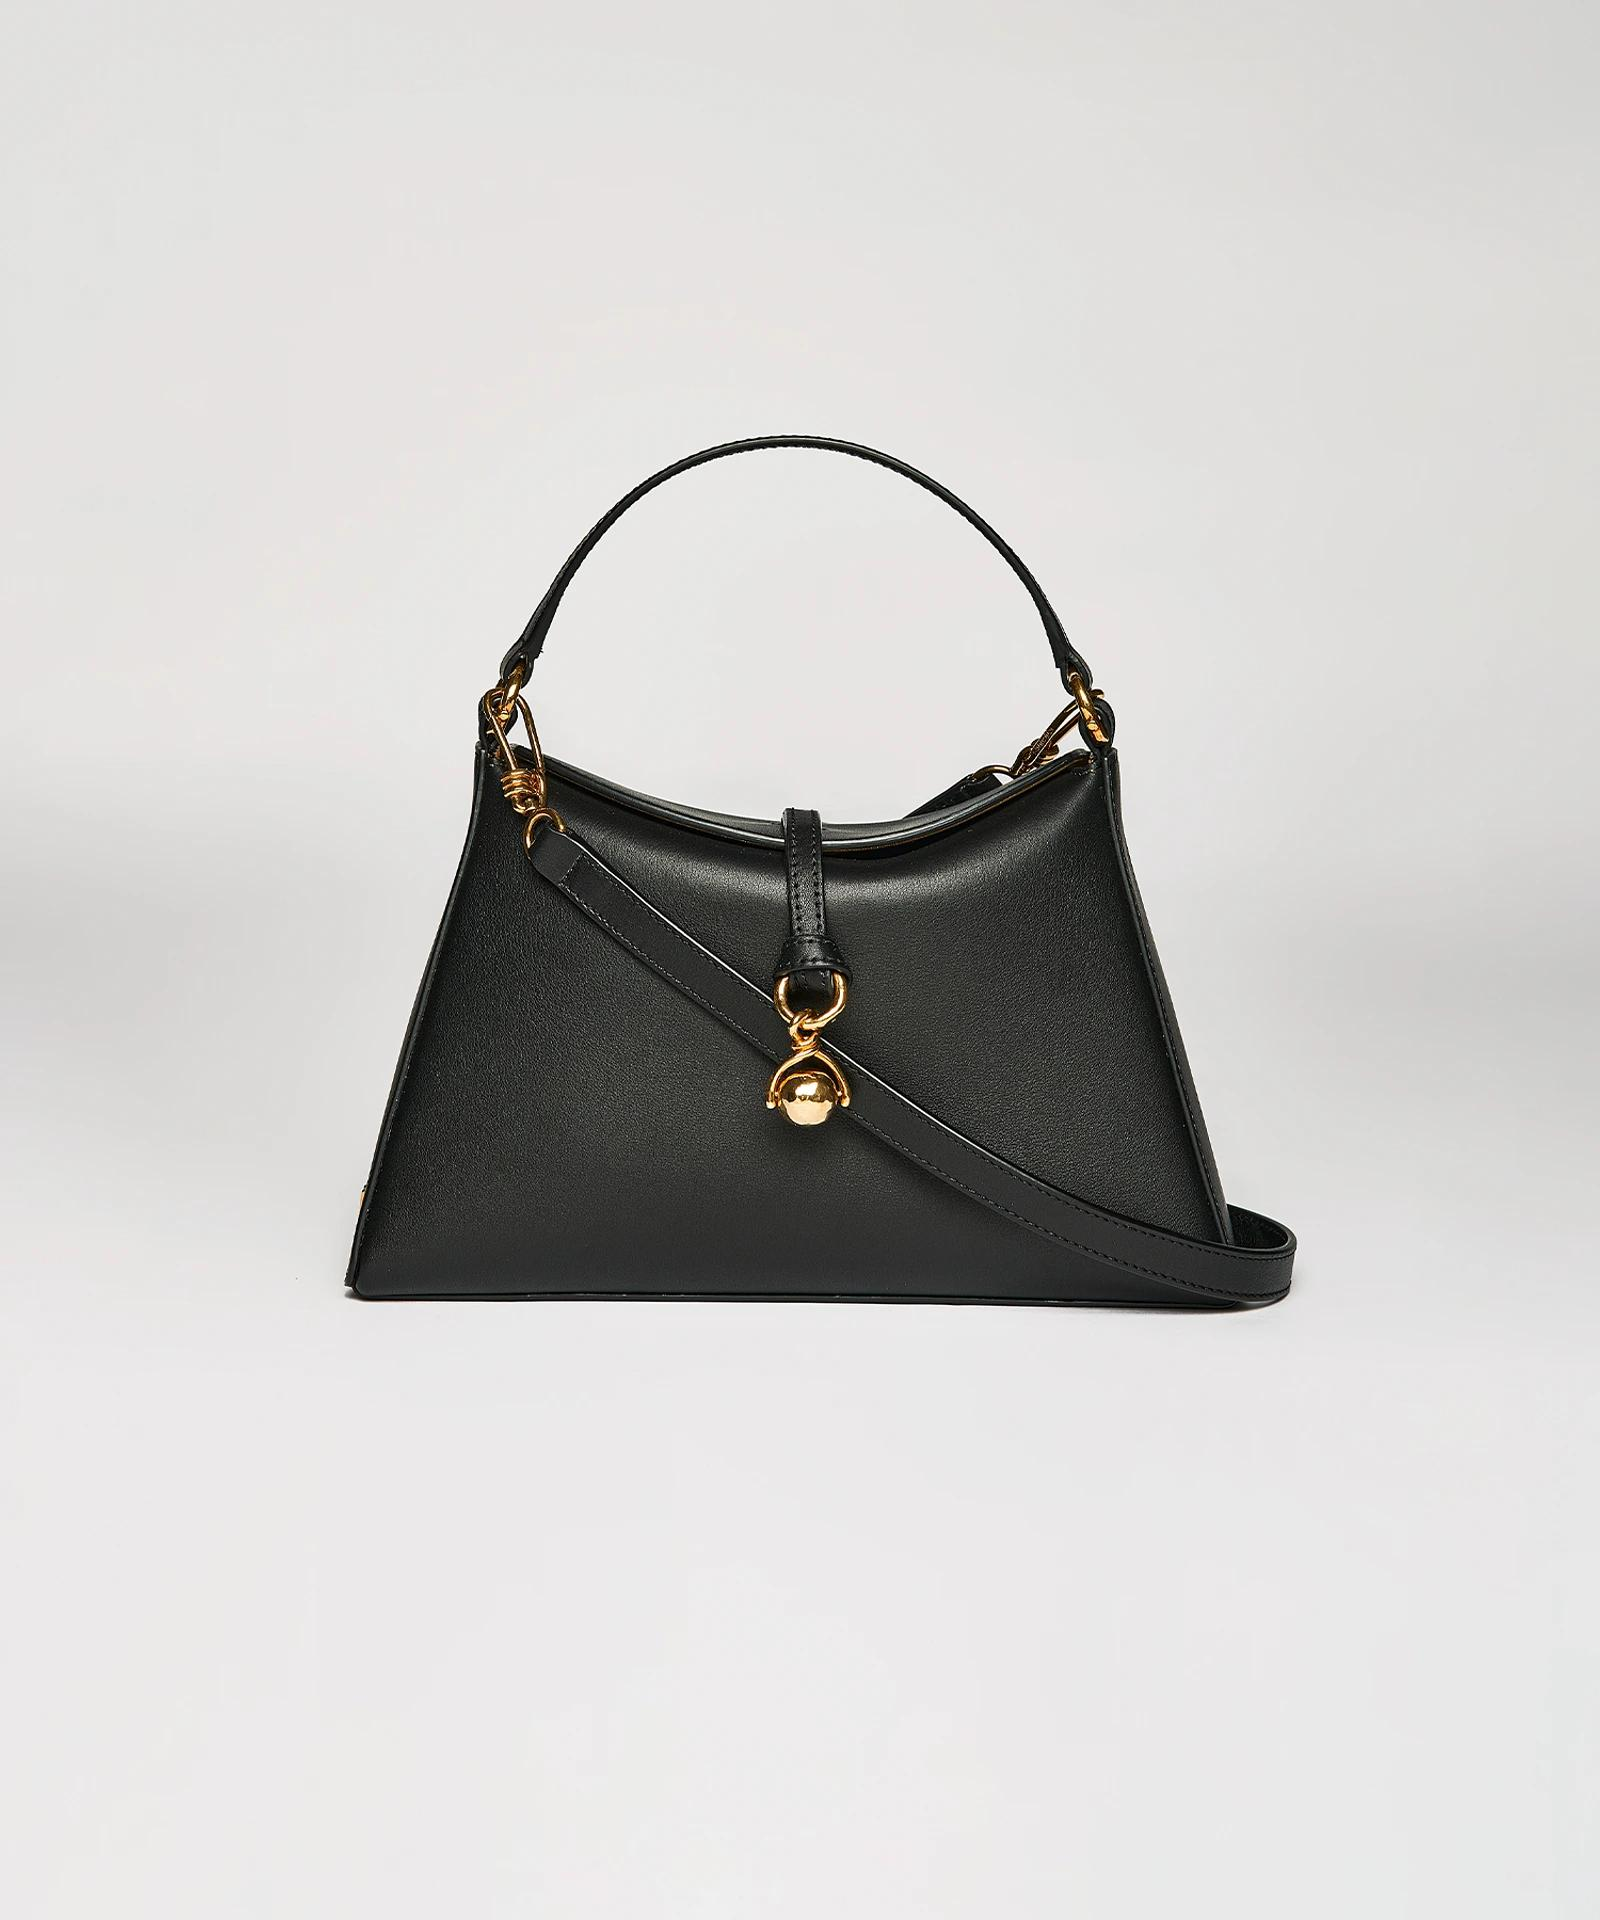 MINI NOYA - Vegan leather shoulder bag - Black